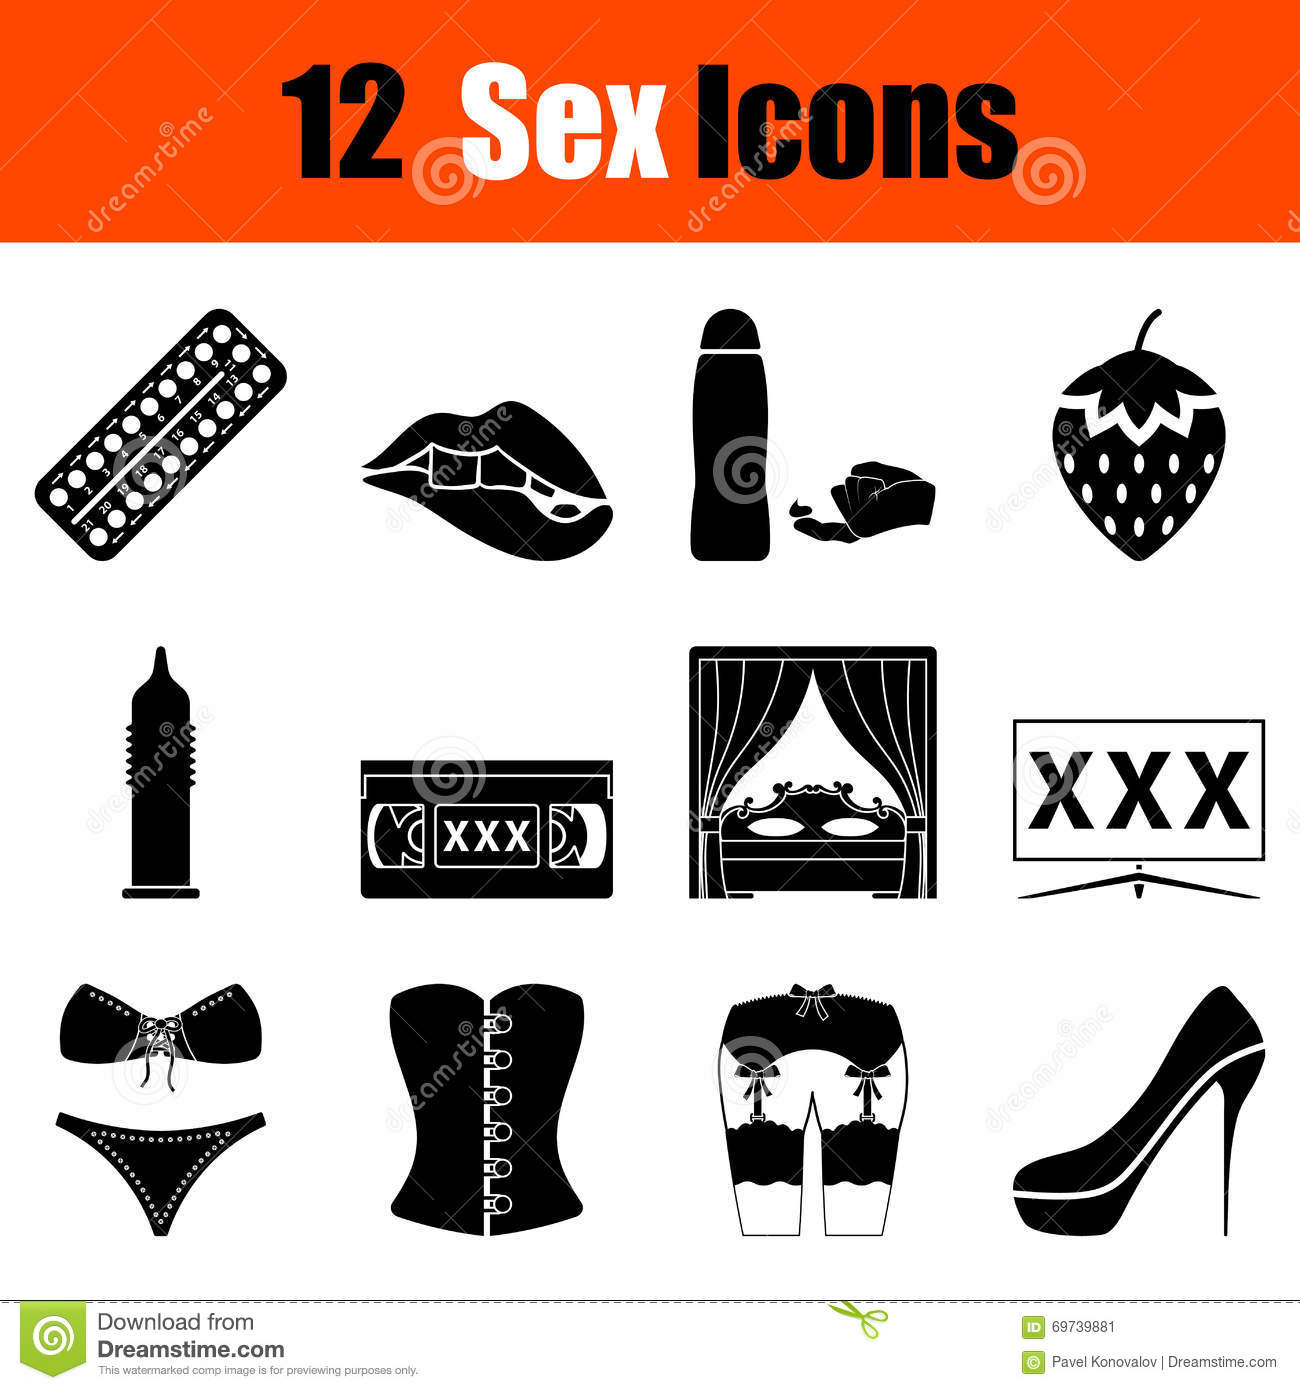 Shoes as sexual symbol